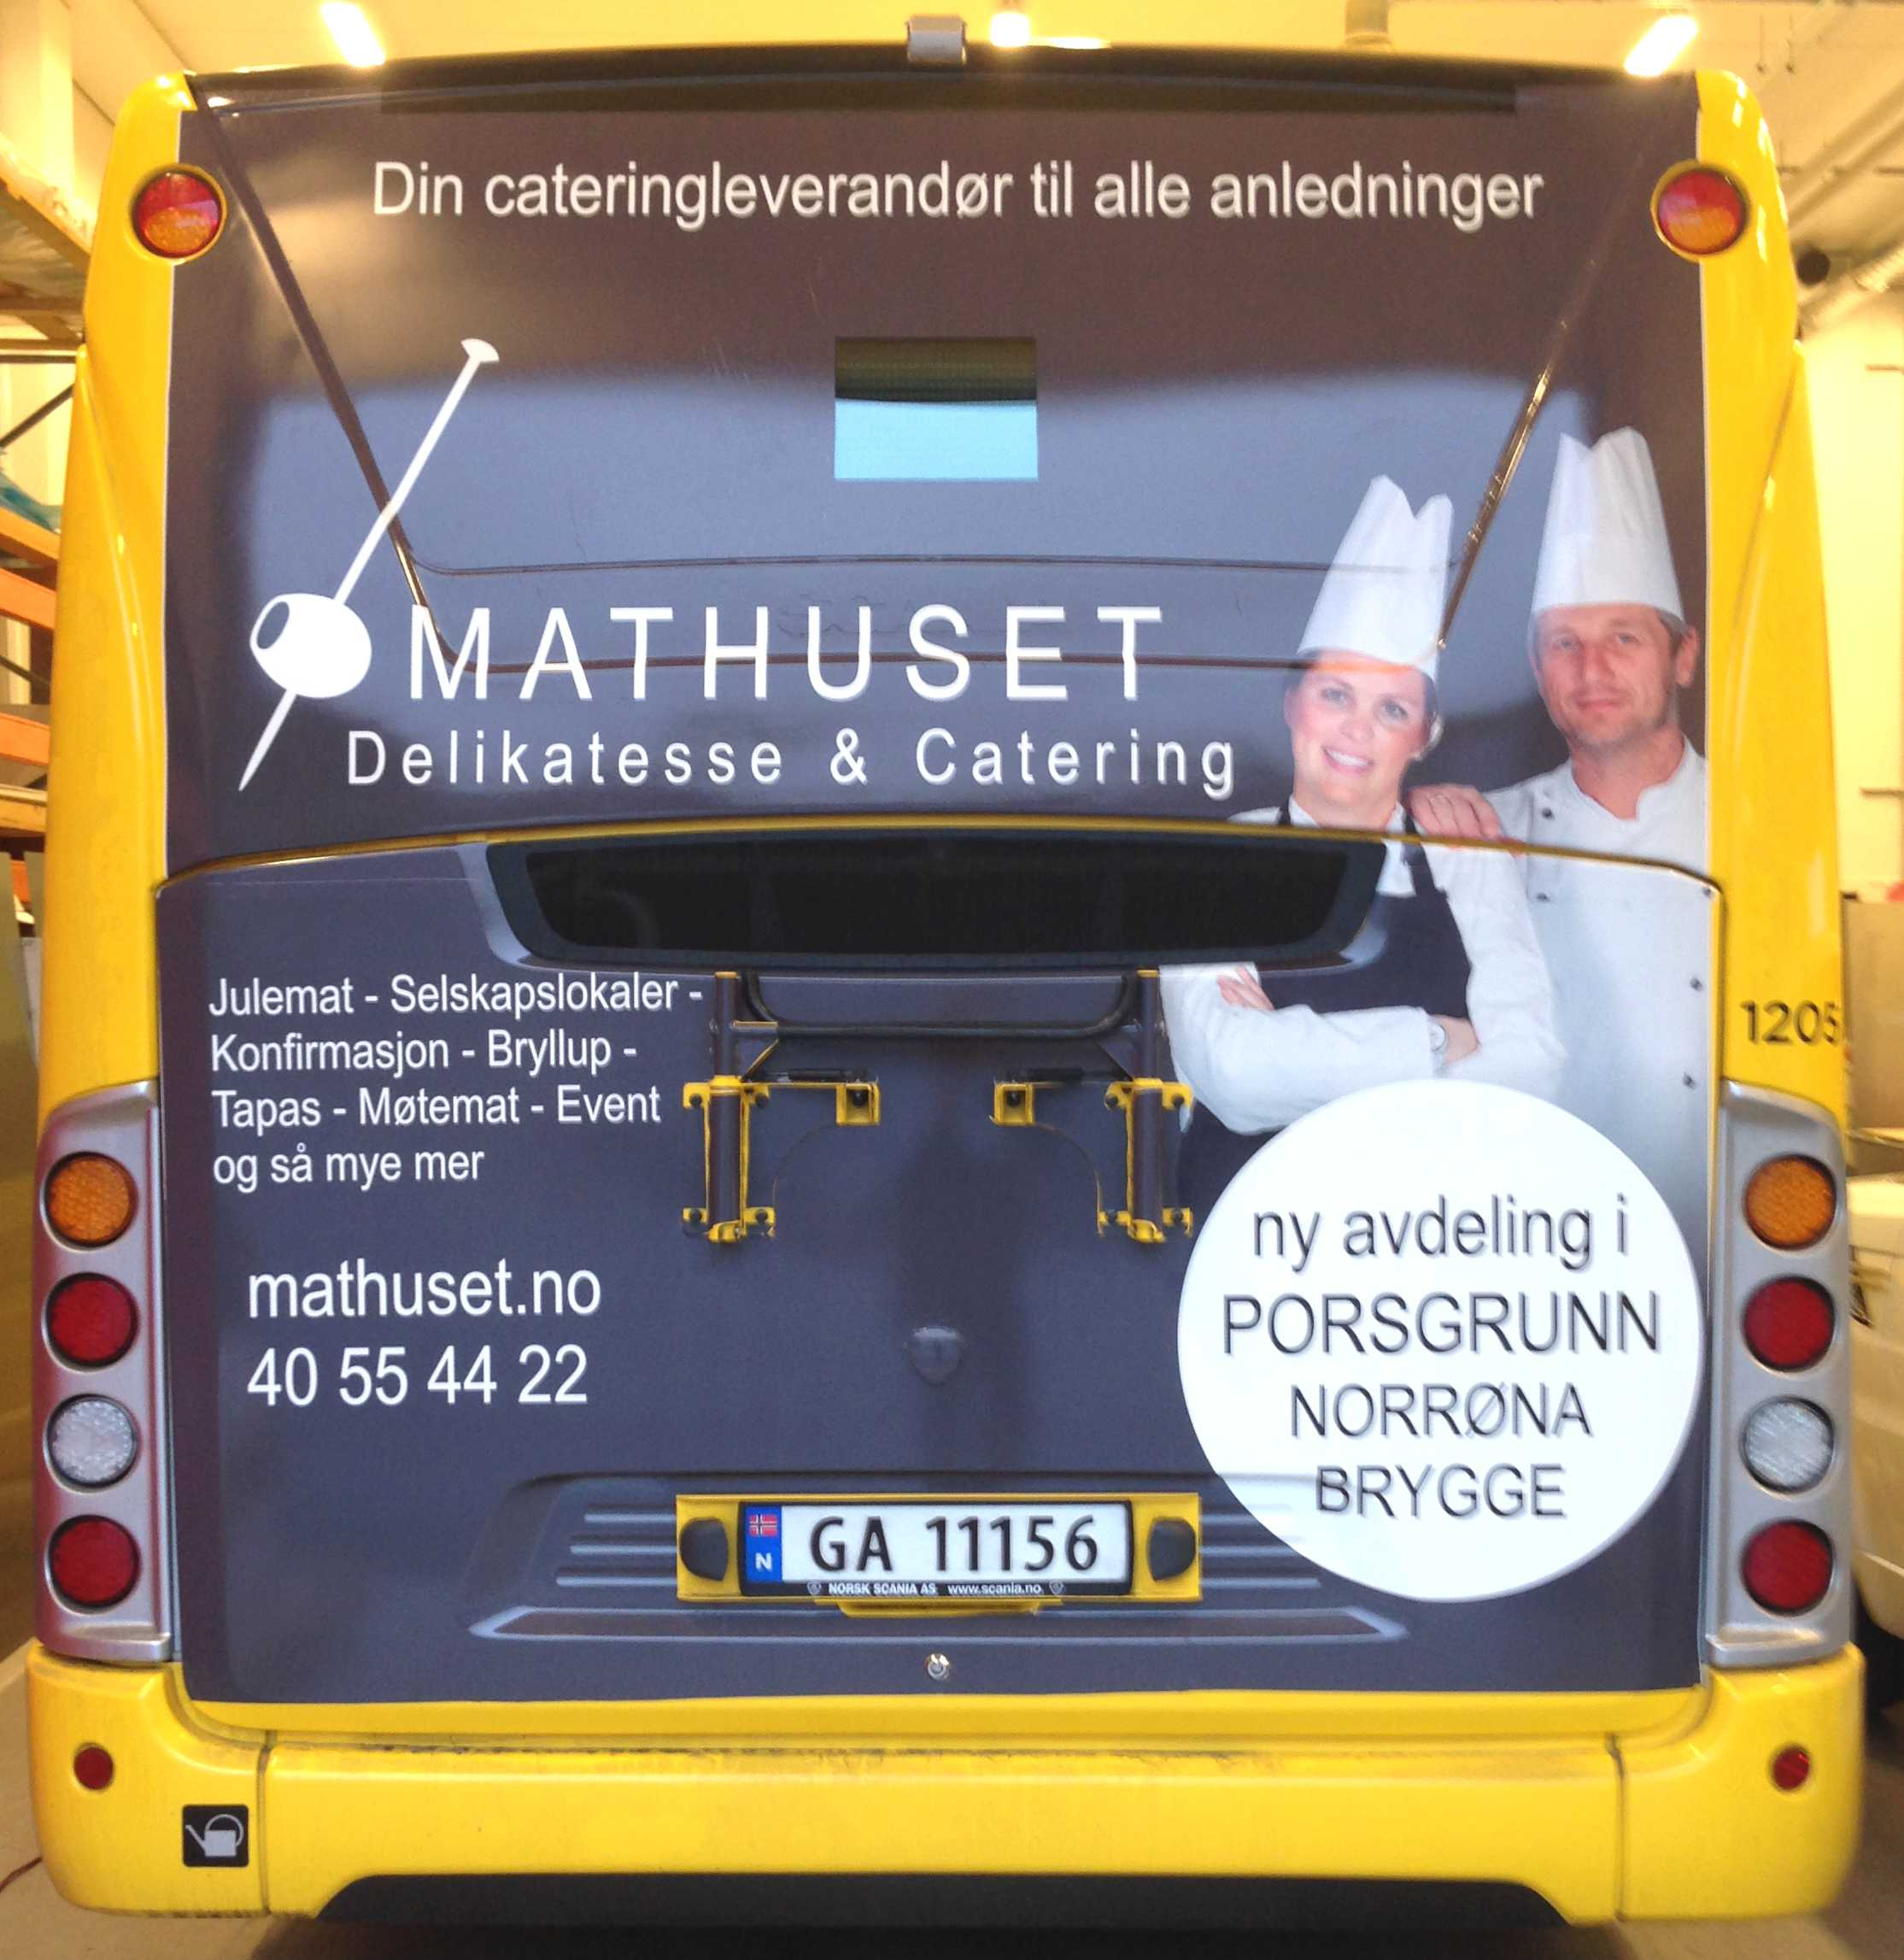 Mathuset